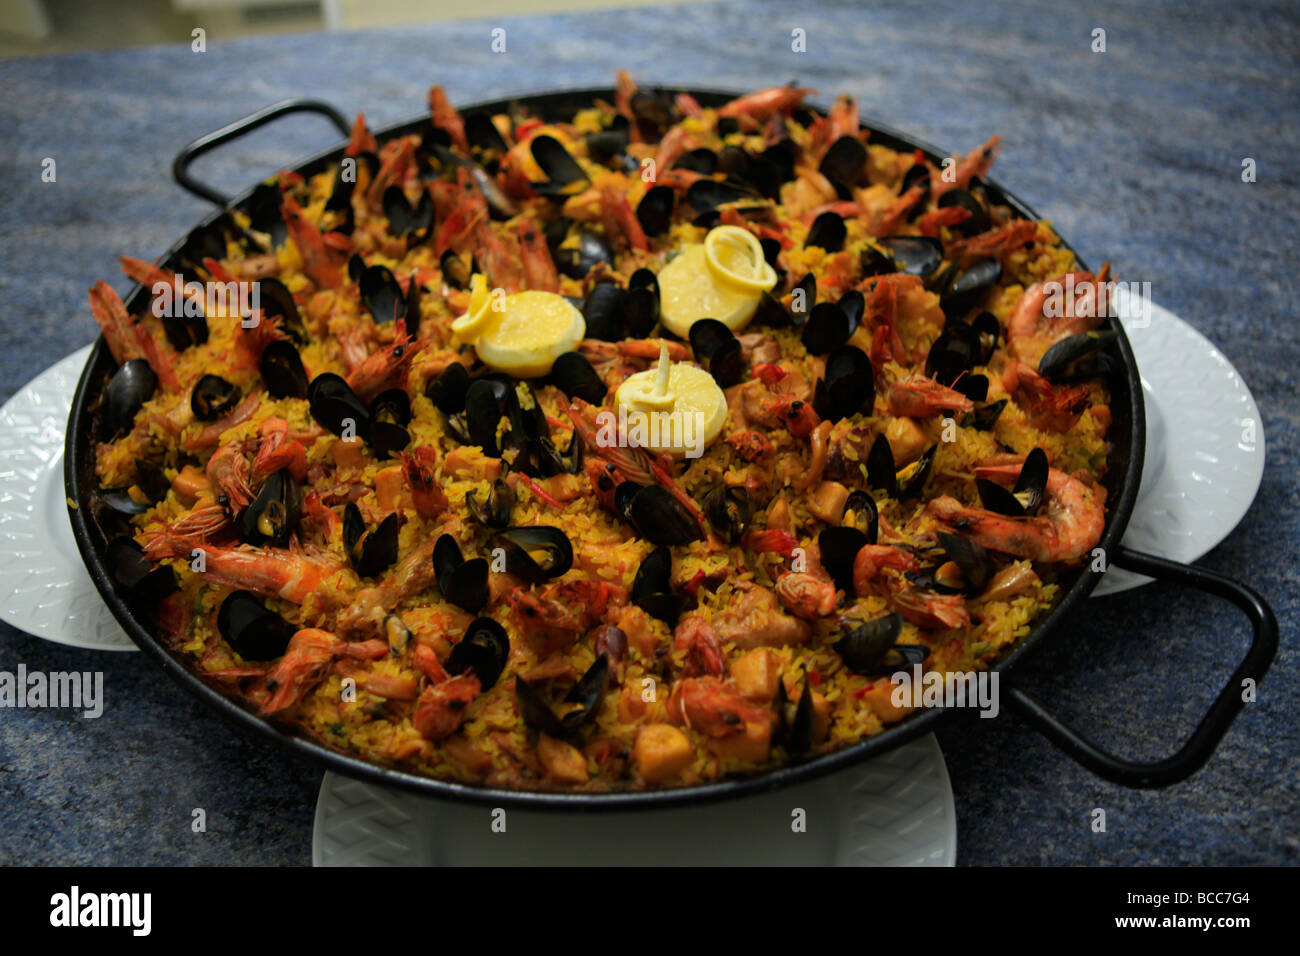 Cooking Paella Spanish Paella probably Spains most colourful and famous gastronomic delight. Spanish food. Stock Photo